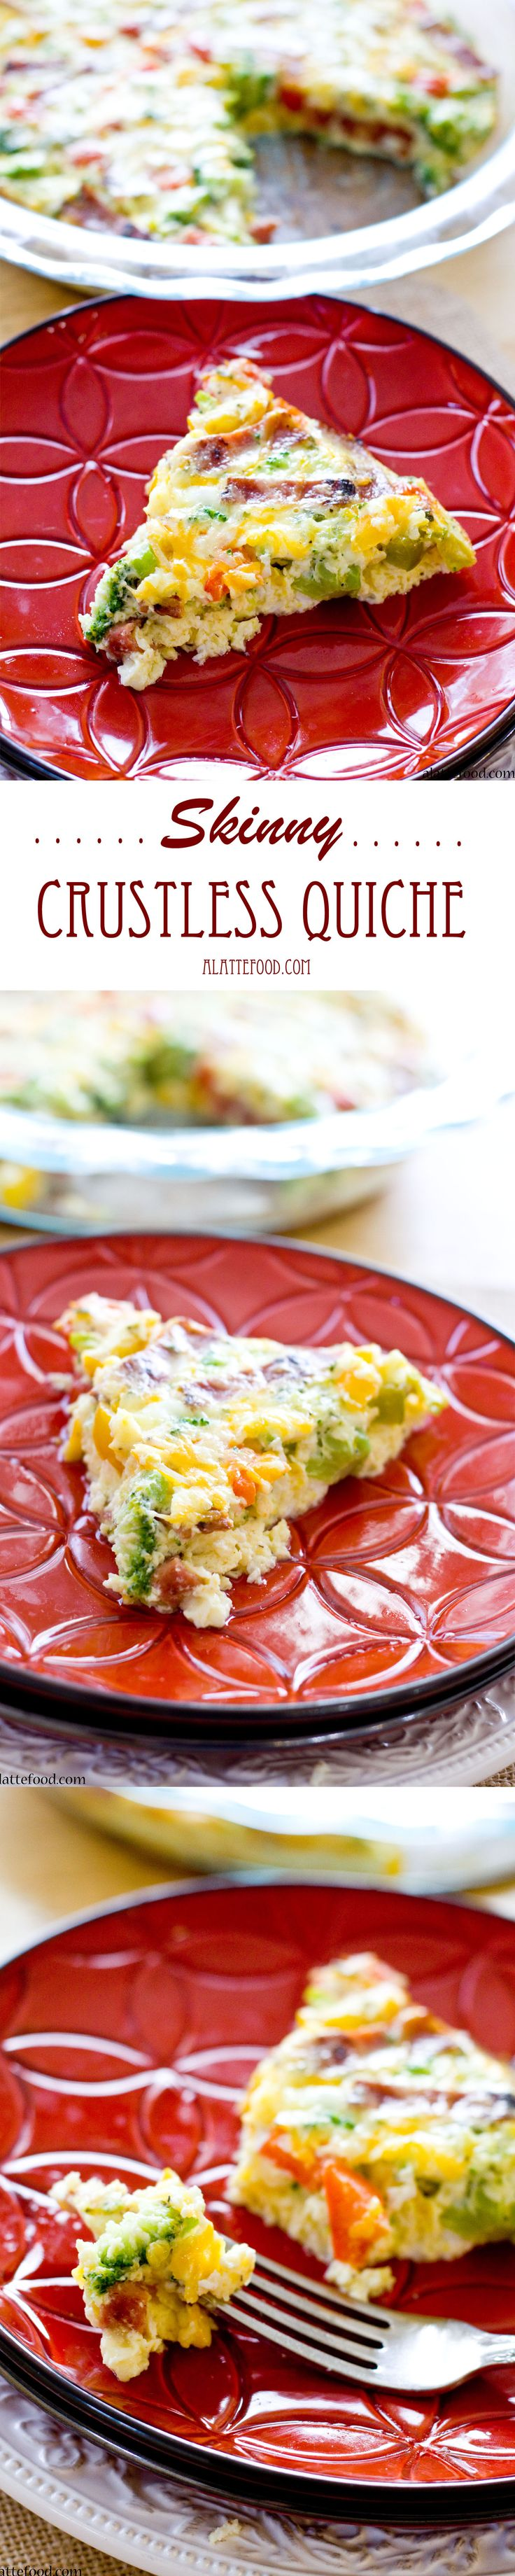 Skinny Crustless Quiche | This delicious quiche has all the taste without